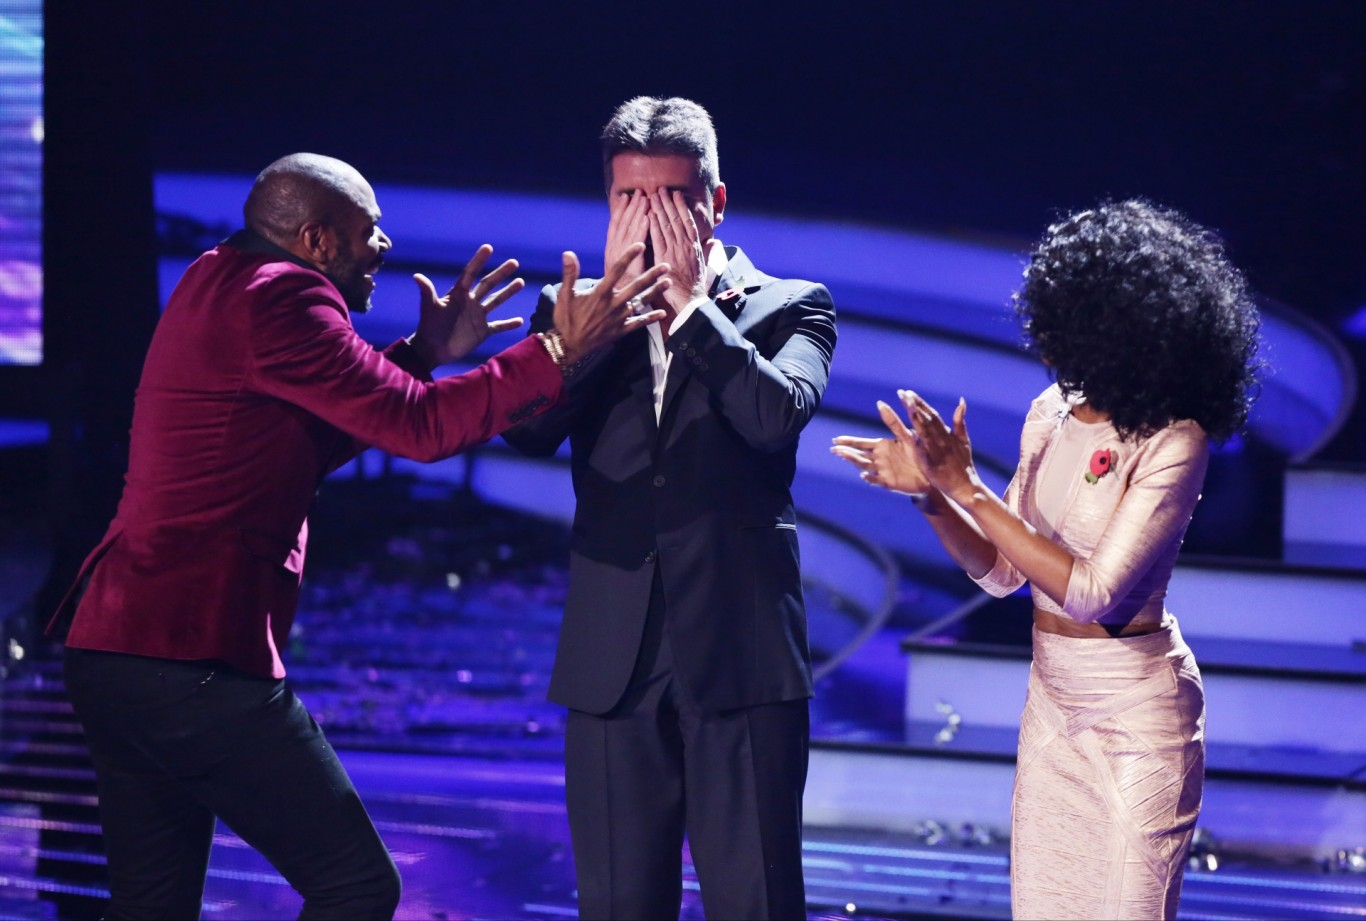 Simon Cowell: Scrapping X Factor would be pointless